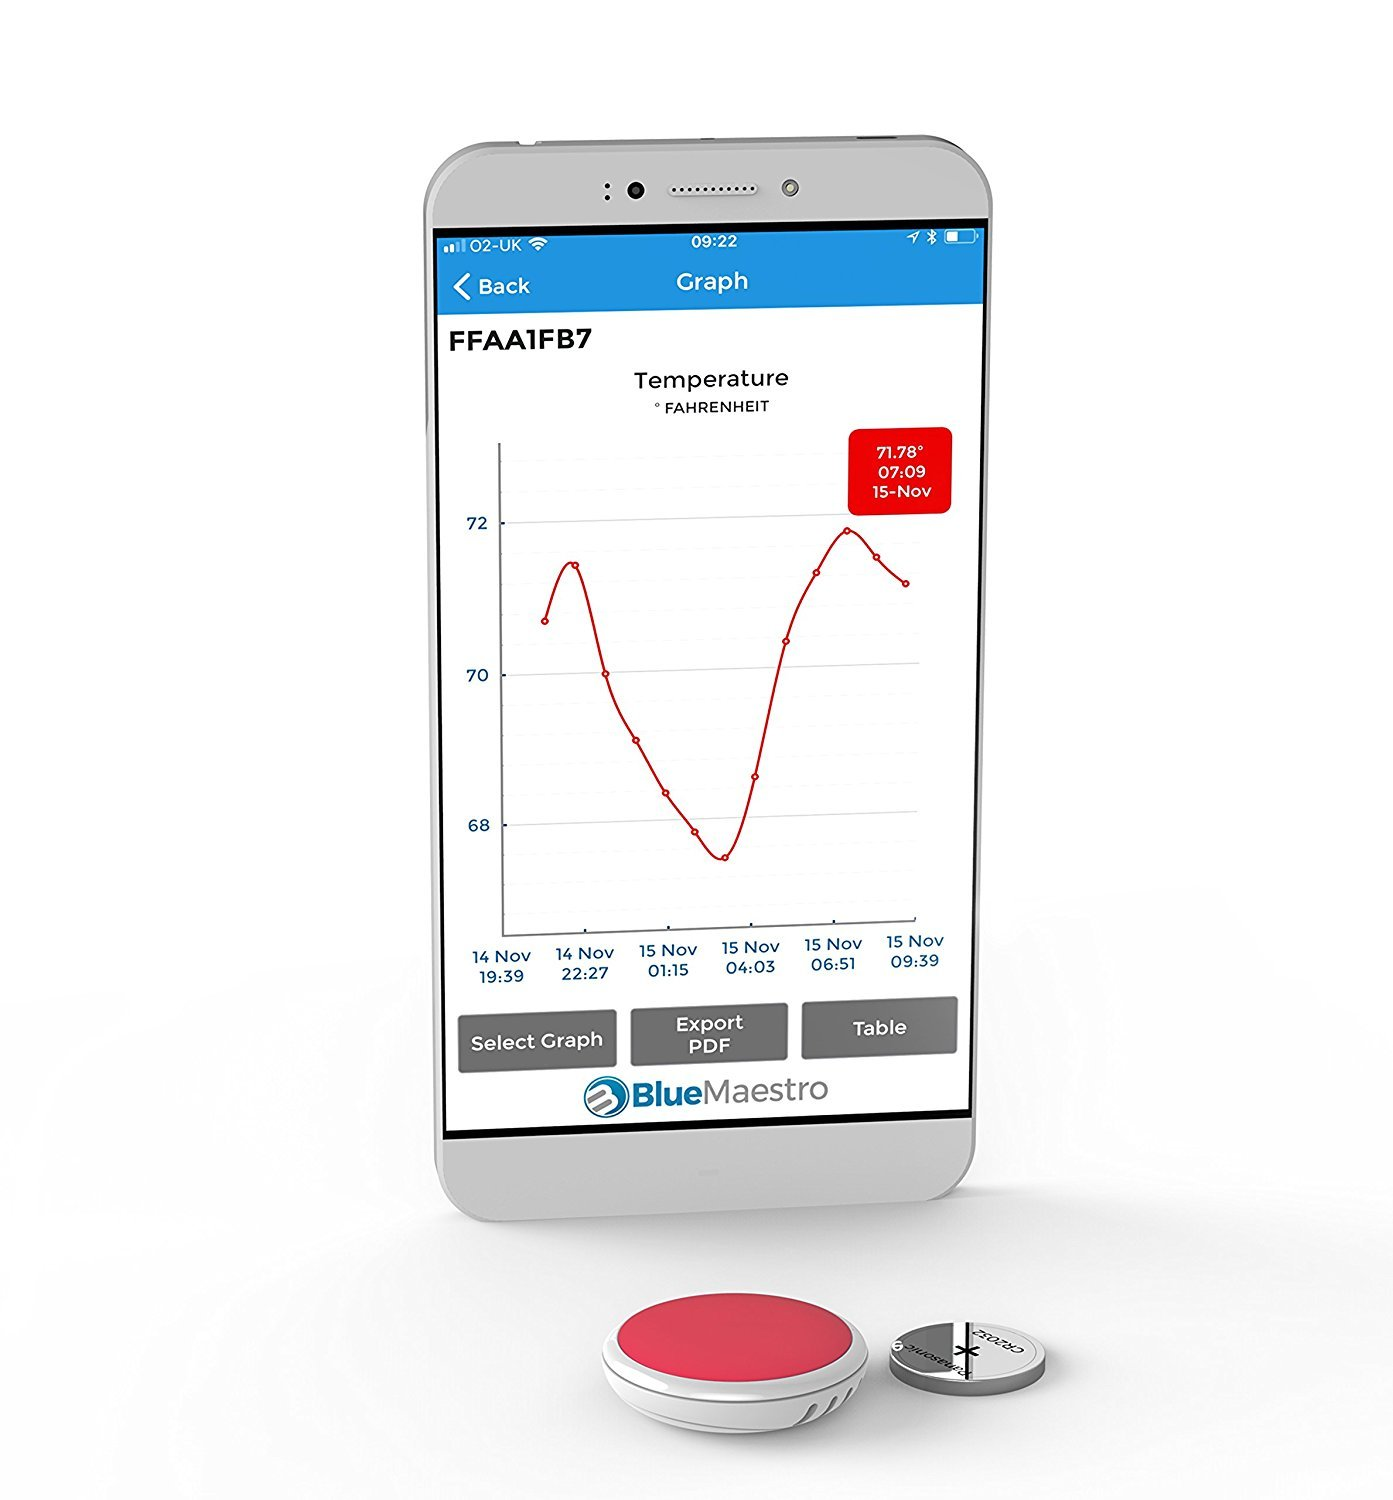 TEMPO DISC Bluetooth wireless thermometer sensor beacon and data logger. Remote monitor for temperature. For iOS and Android.